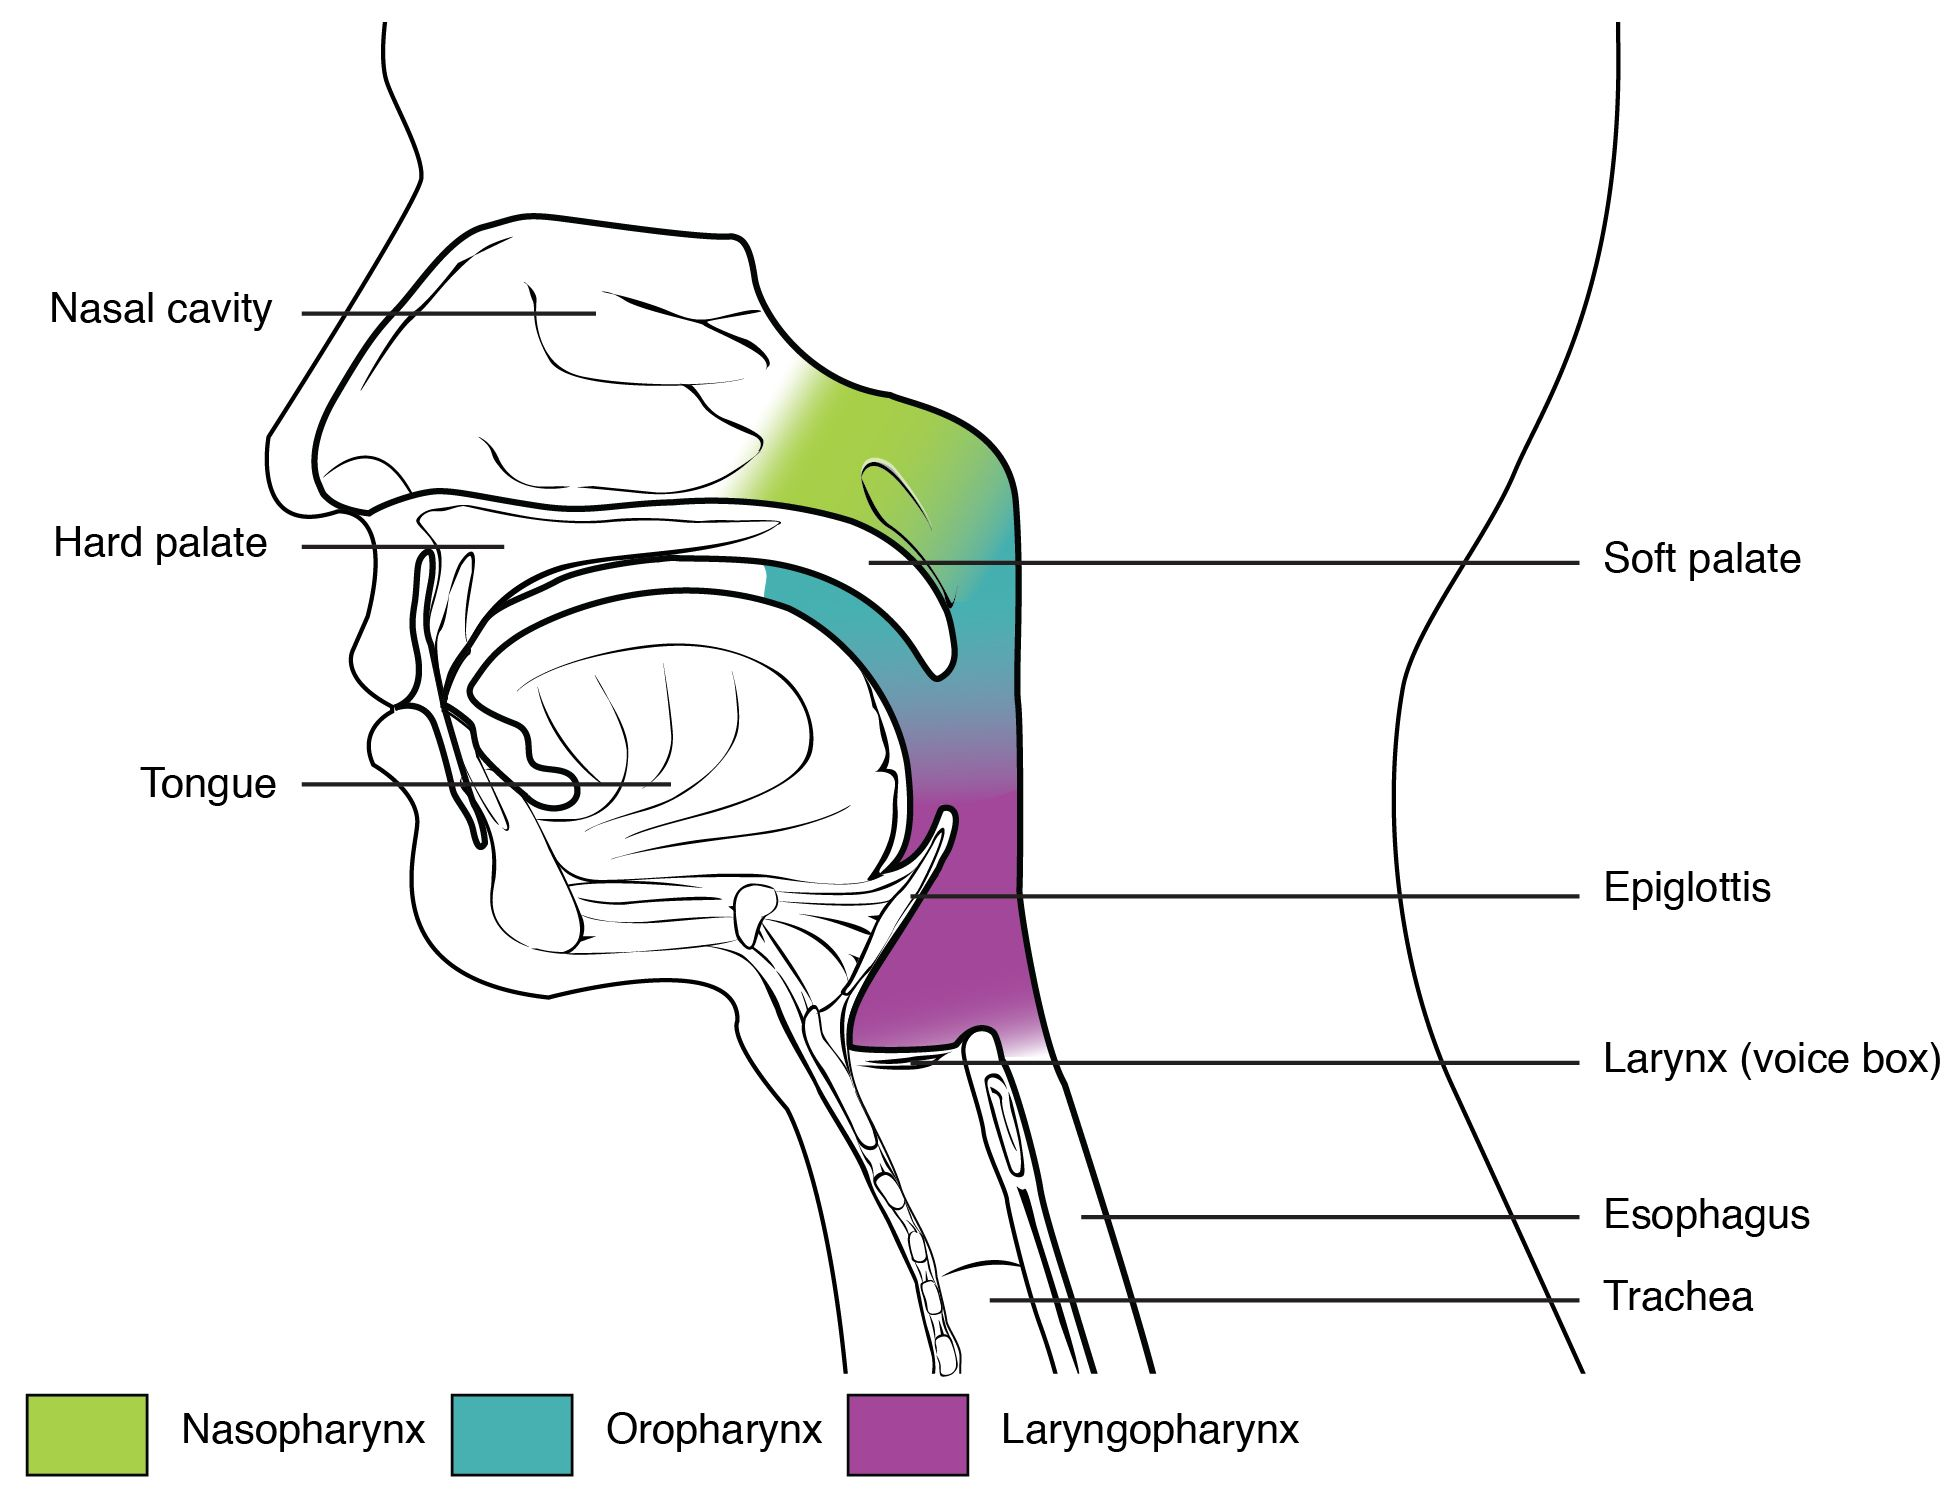 medium resolution of this figure shows the side view of the face the different parts of the pharynx are color coded and labeled